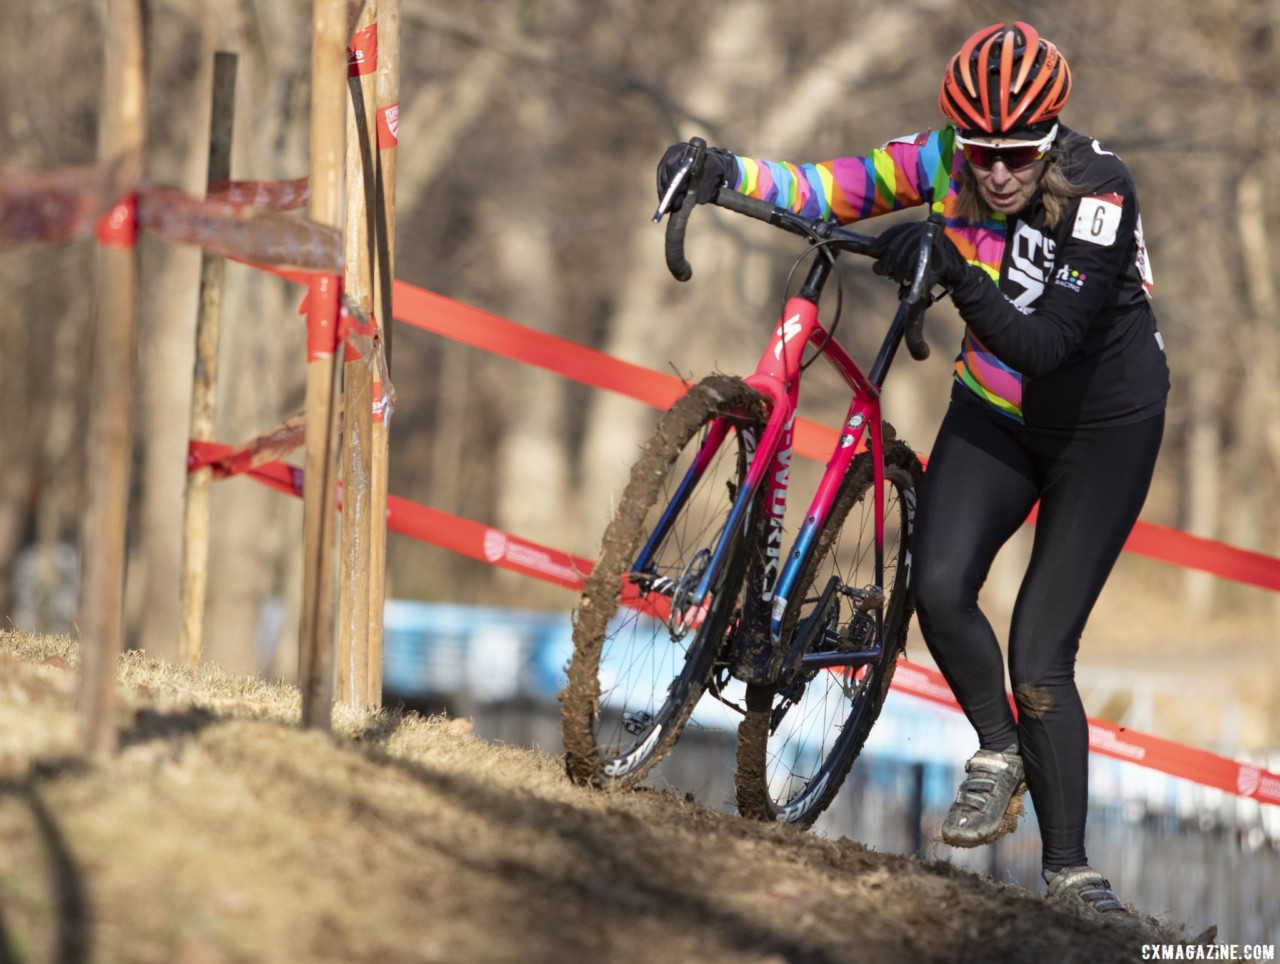 Martha Iverson moves through the off-camber. Masters Women 60-64, 65-69, 70-74, 75+. 2018 Cyclocross National Championships, Louisville, KY. © A. Yee / Cyclocross Magazine